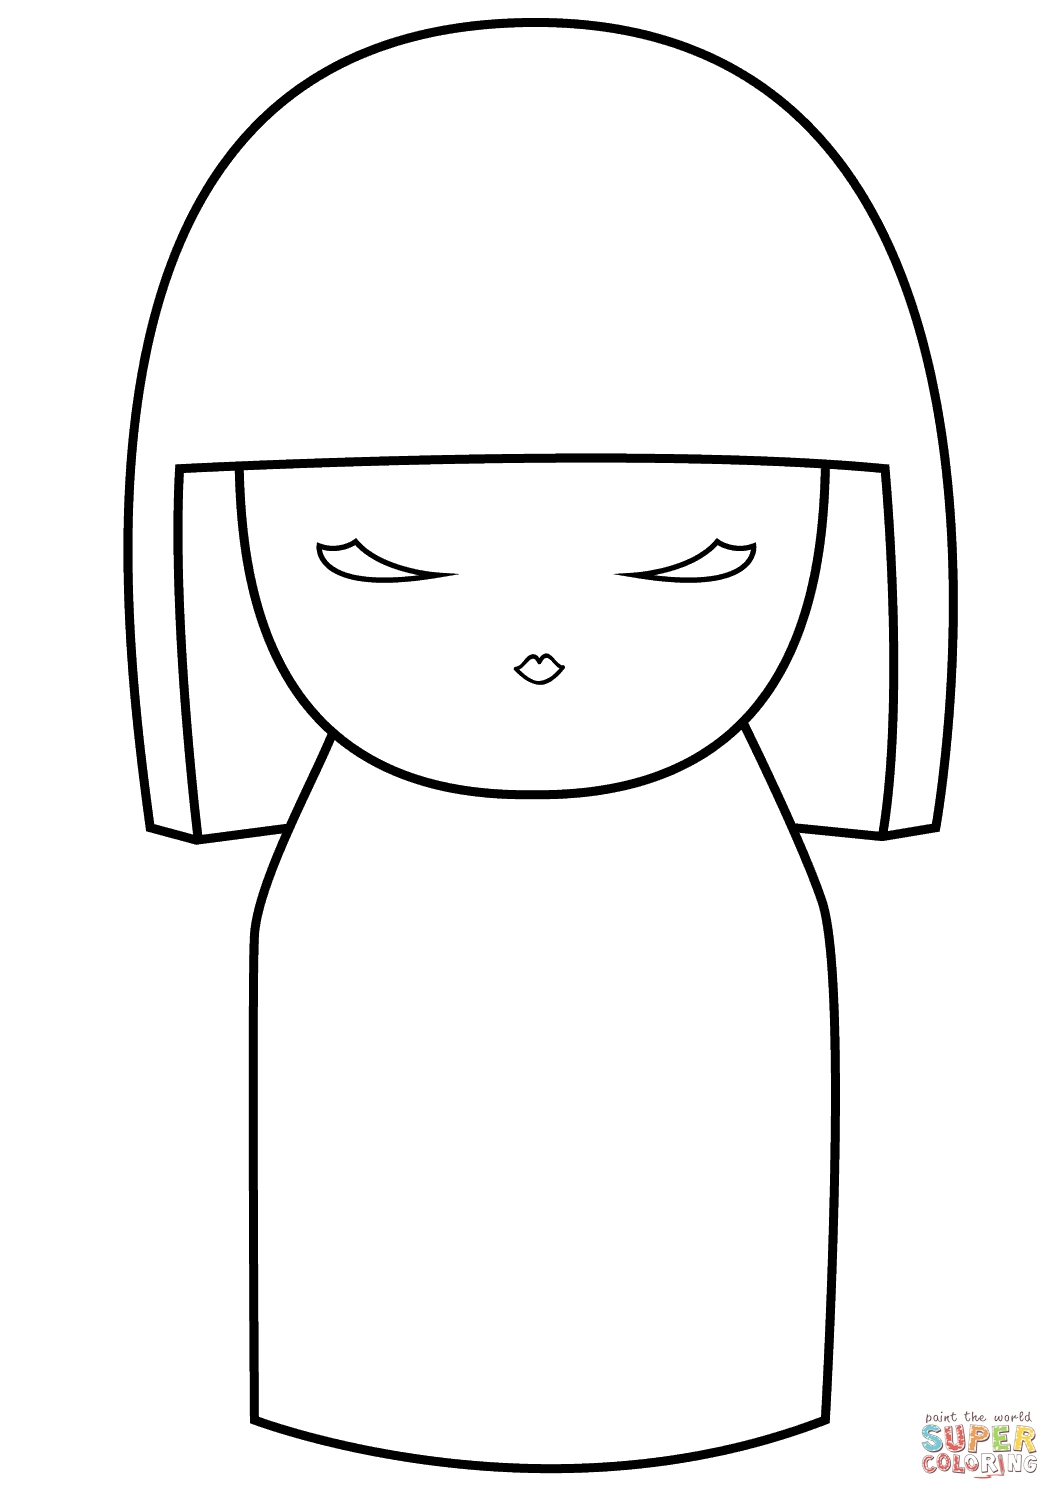 Full Page Coloring Pages - Coloriage Kimmidoll Vide